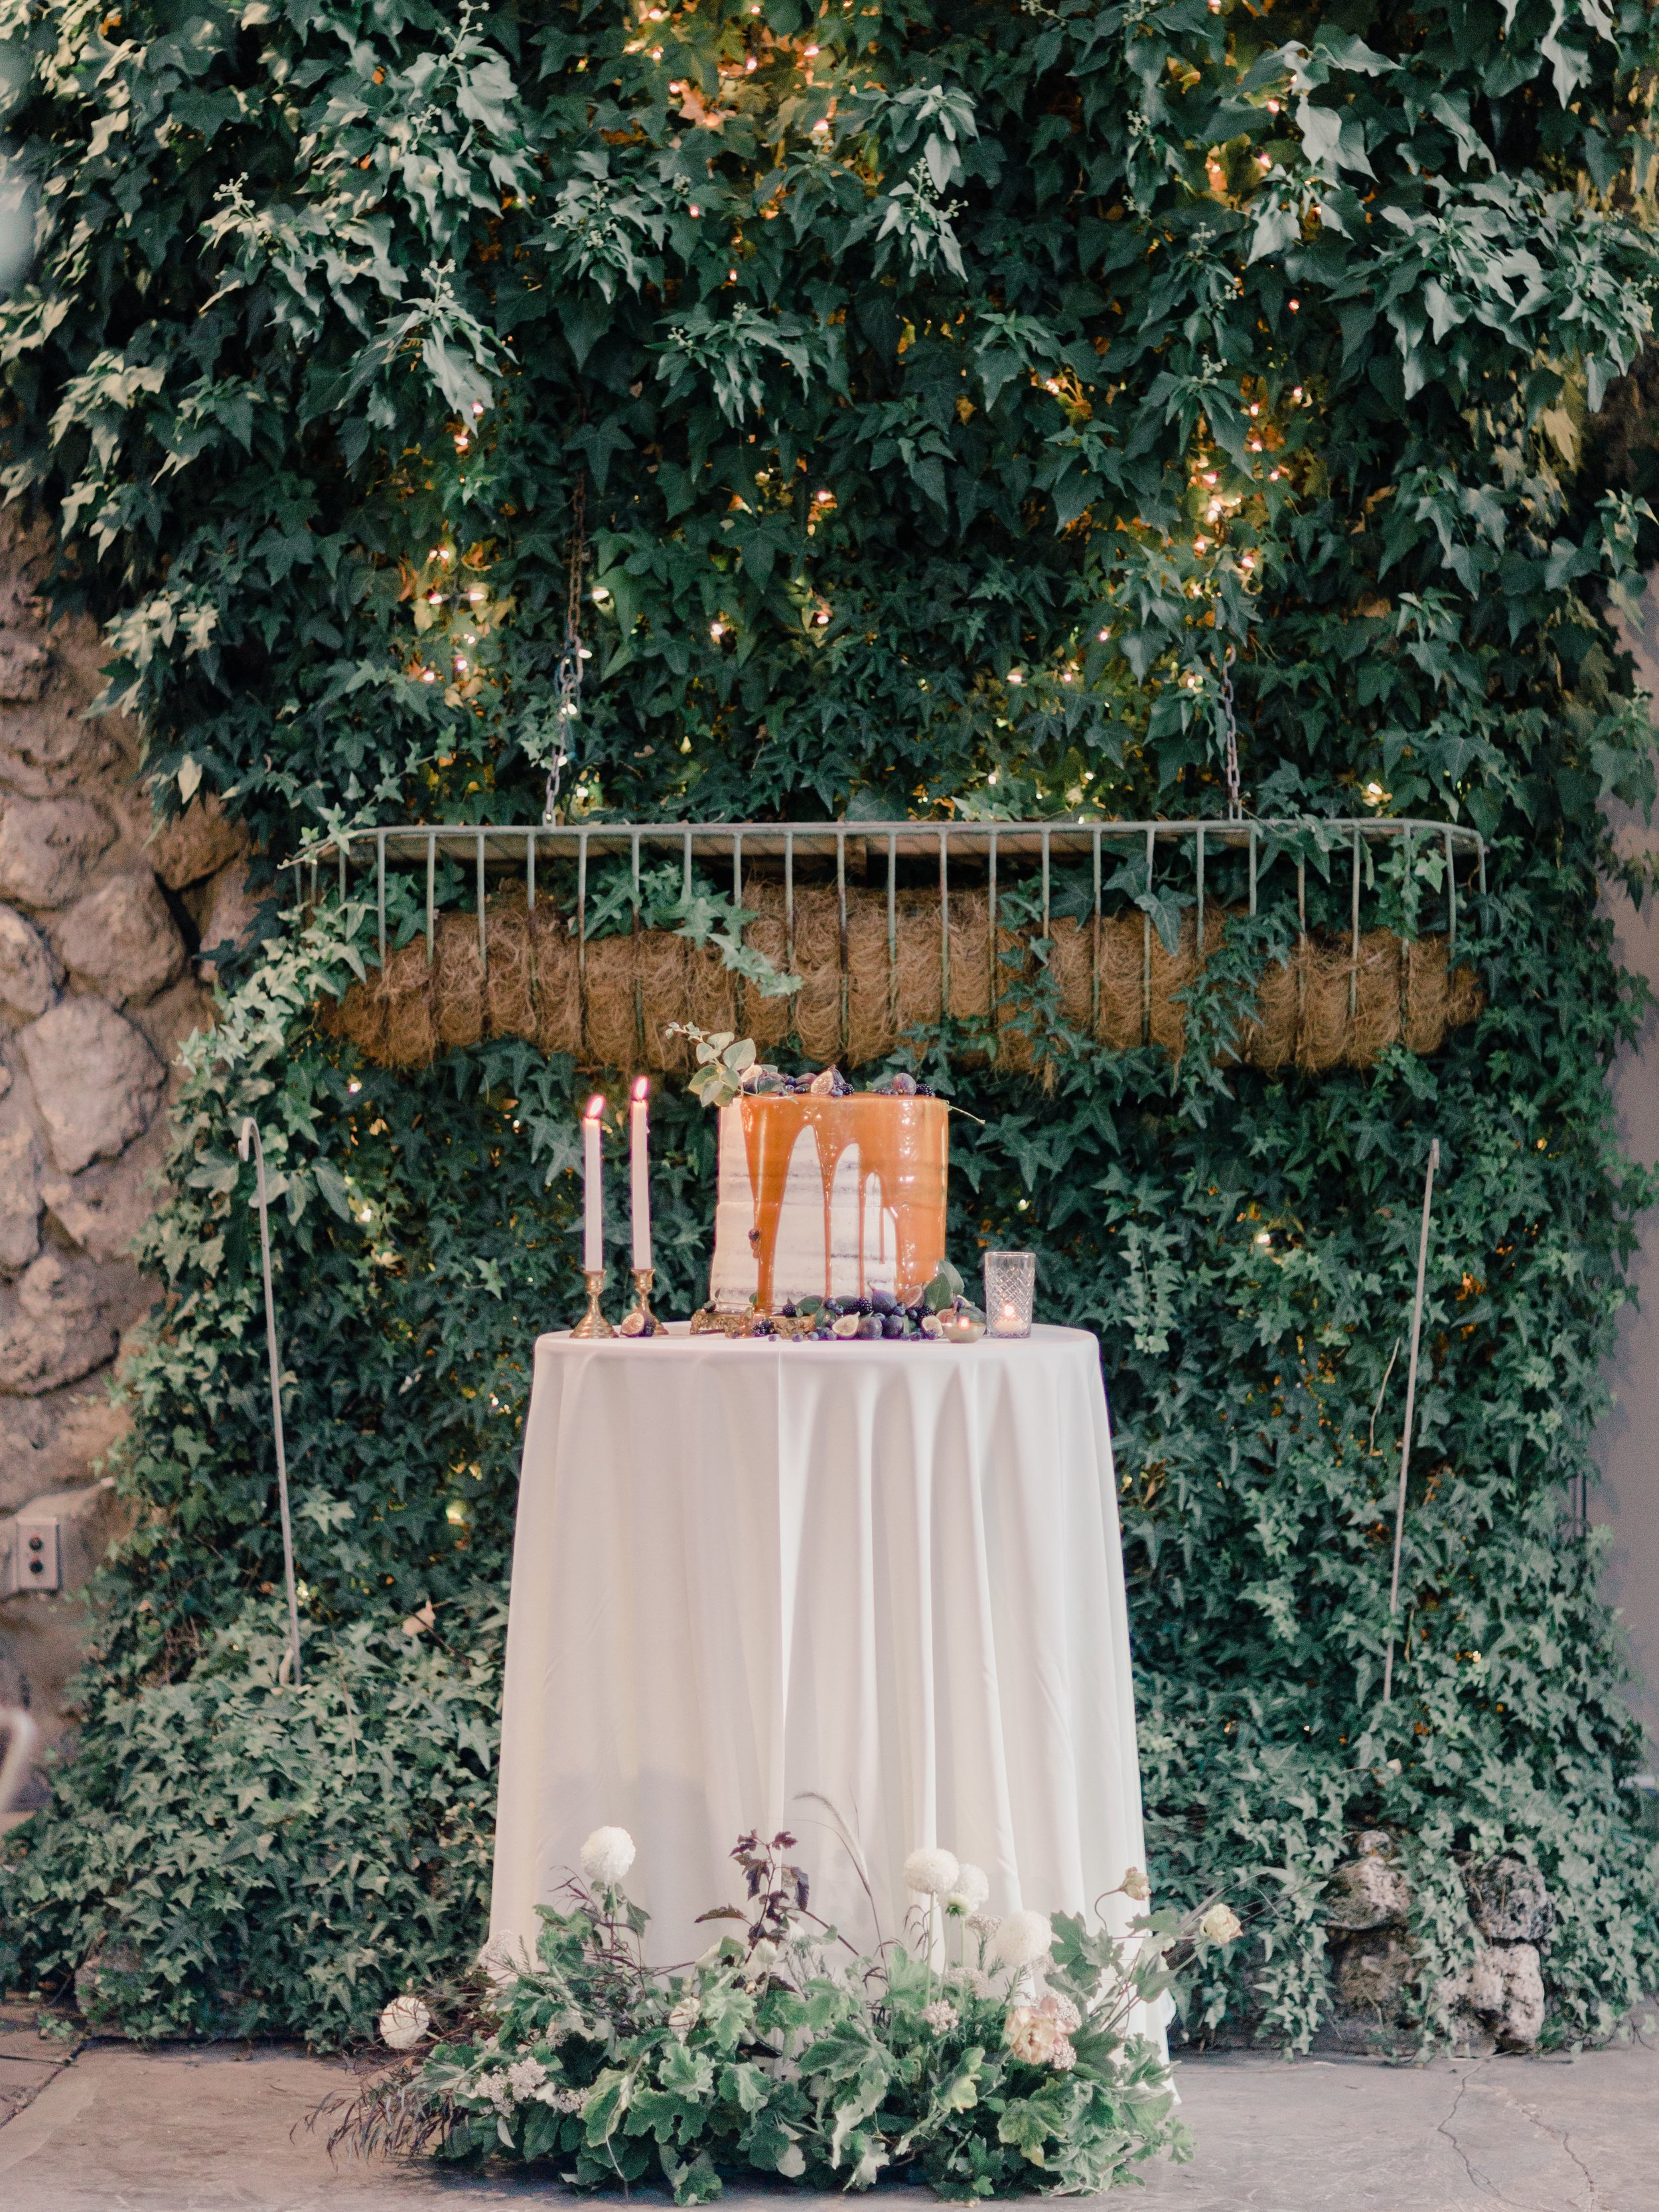 The dreamiest caramel covered semi naked wedding cake at this overgrown garden venue covered in figs, berries, fruit and vines for this early Autumn wedding